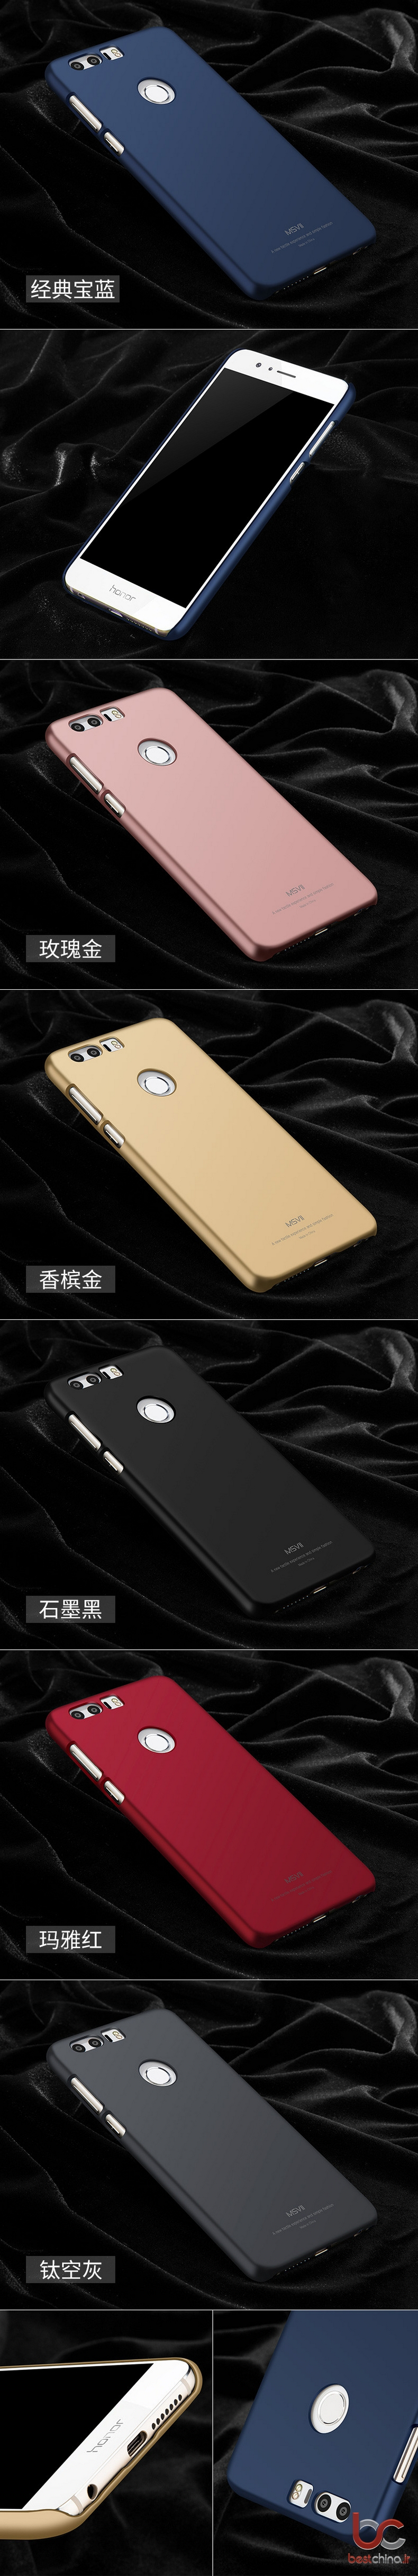 huawei-honor-8-msvii-back-cover3